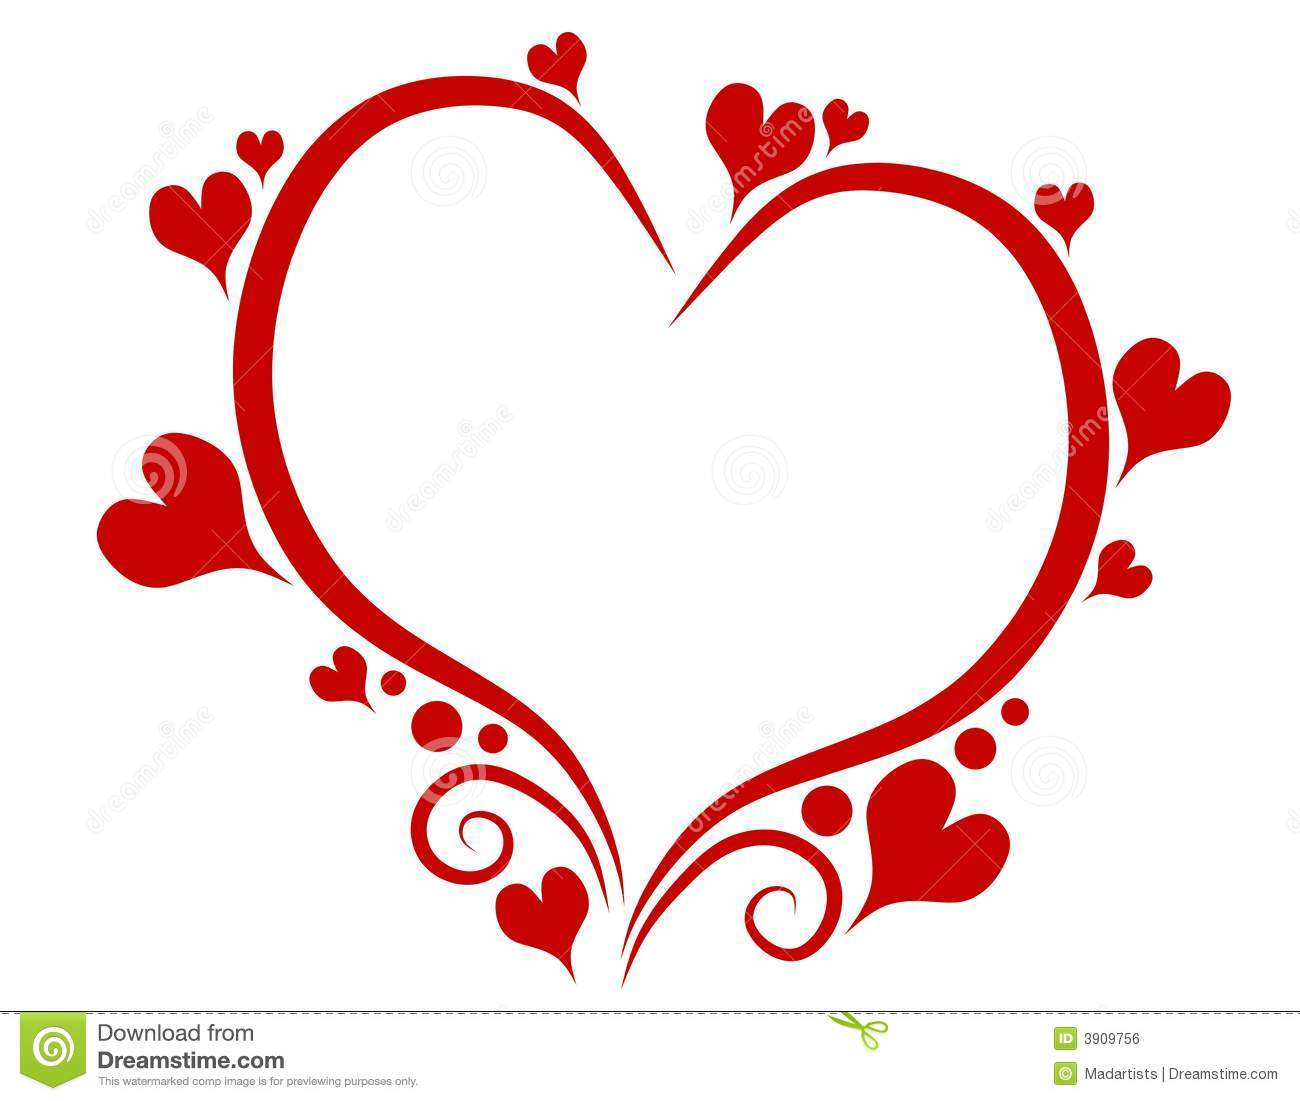 Decorative Red Valentine's Day Heart Outline Royalty Free Stock Image ...